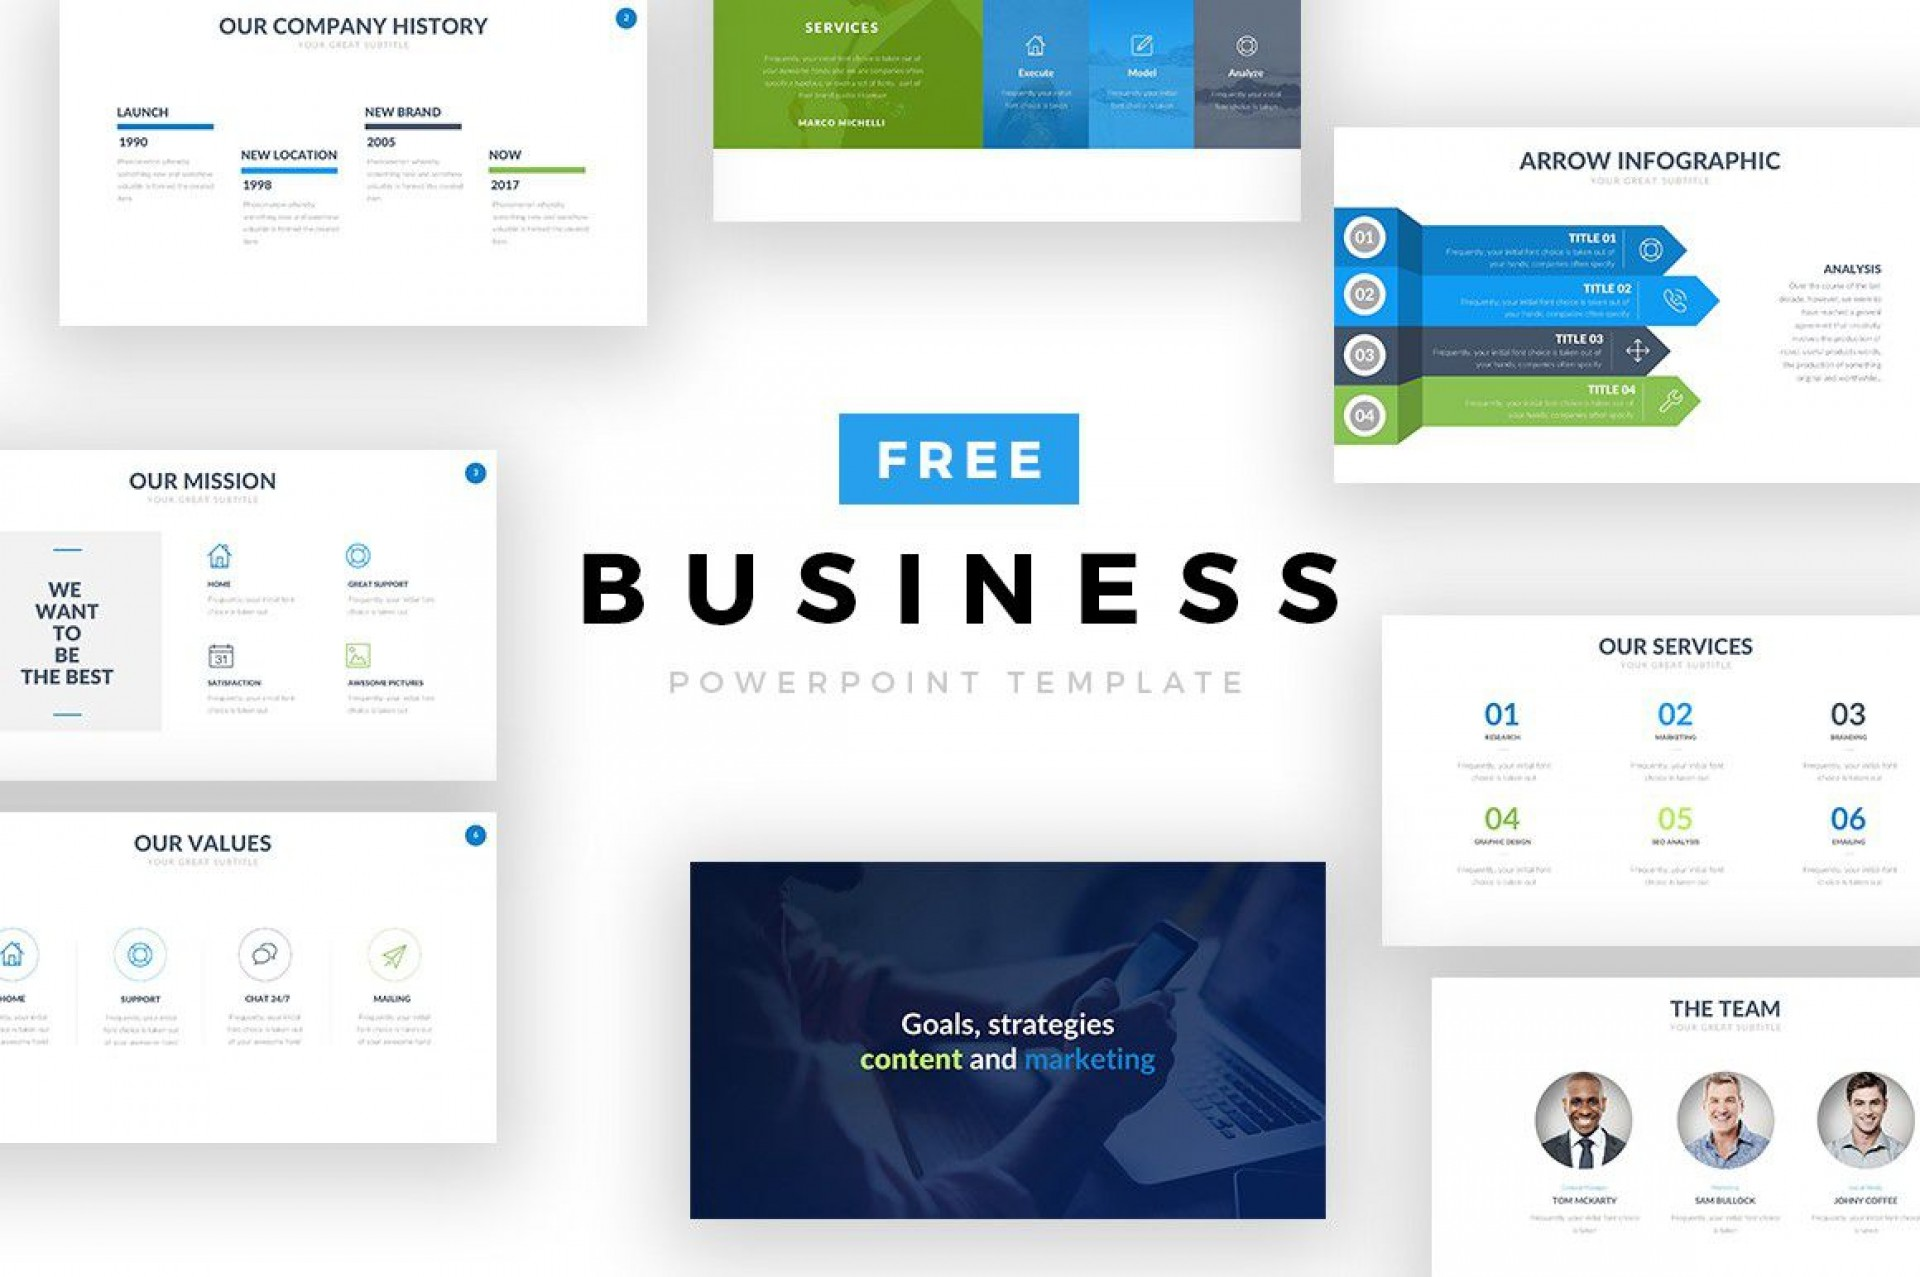 000 Surprising Free Download Ppt Template For Busines Highest Clarity  Presentation Plan1920